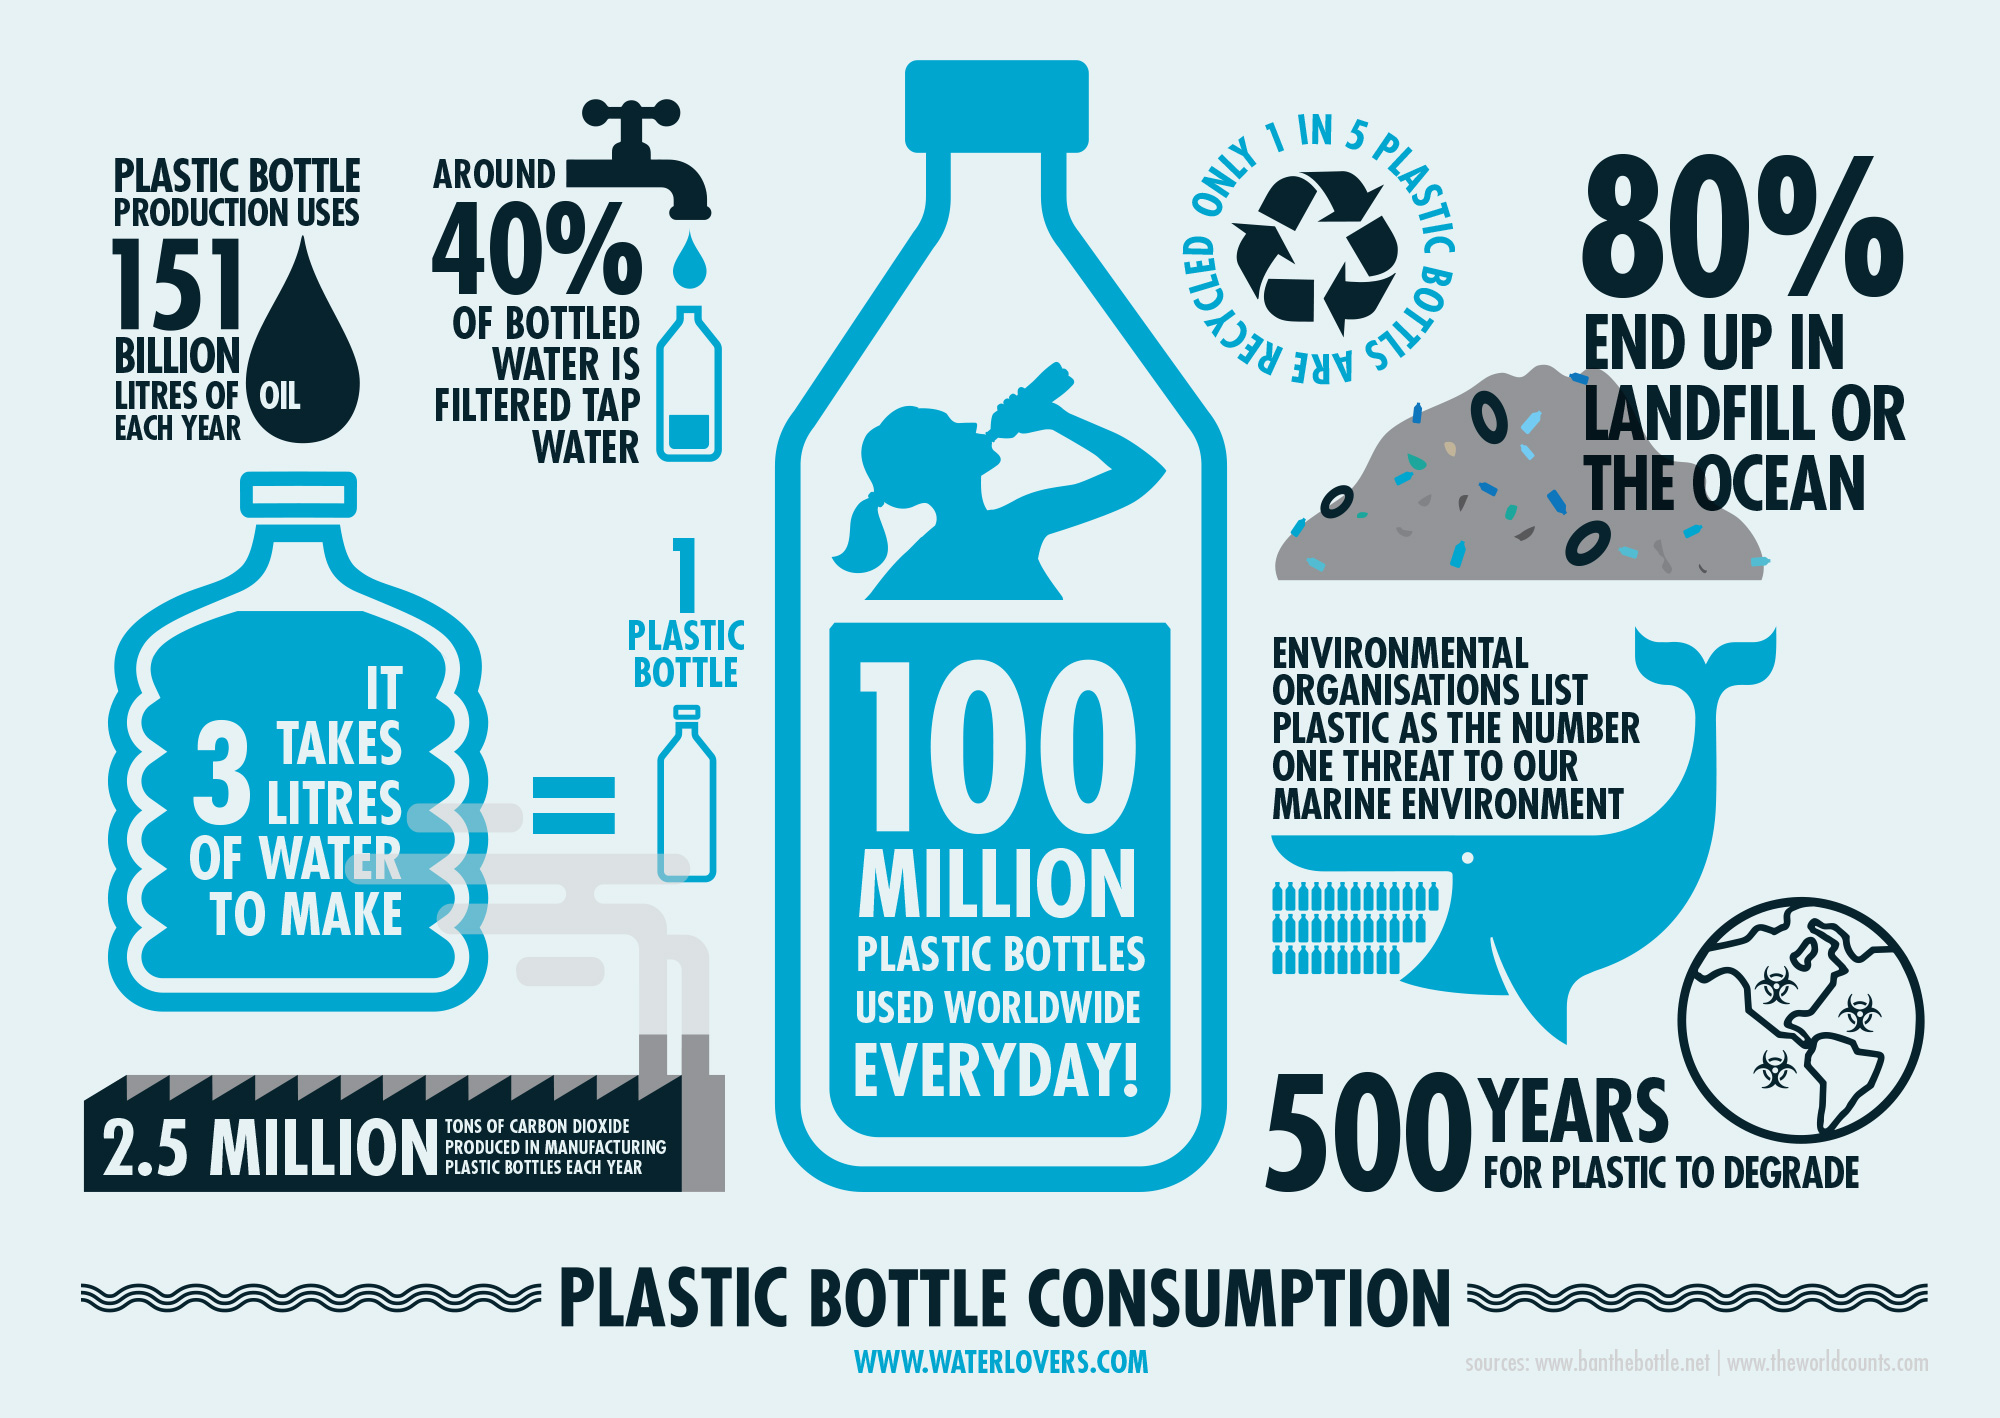 plastic-bottles-infographic-bottled-water-waterlovers-australia